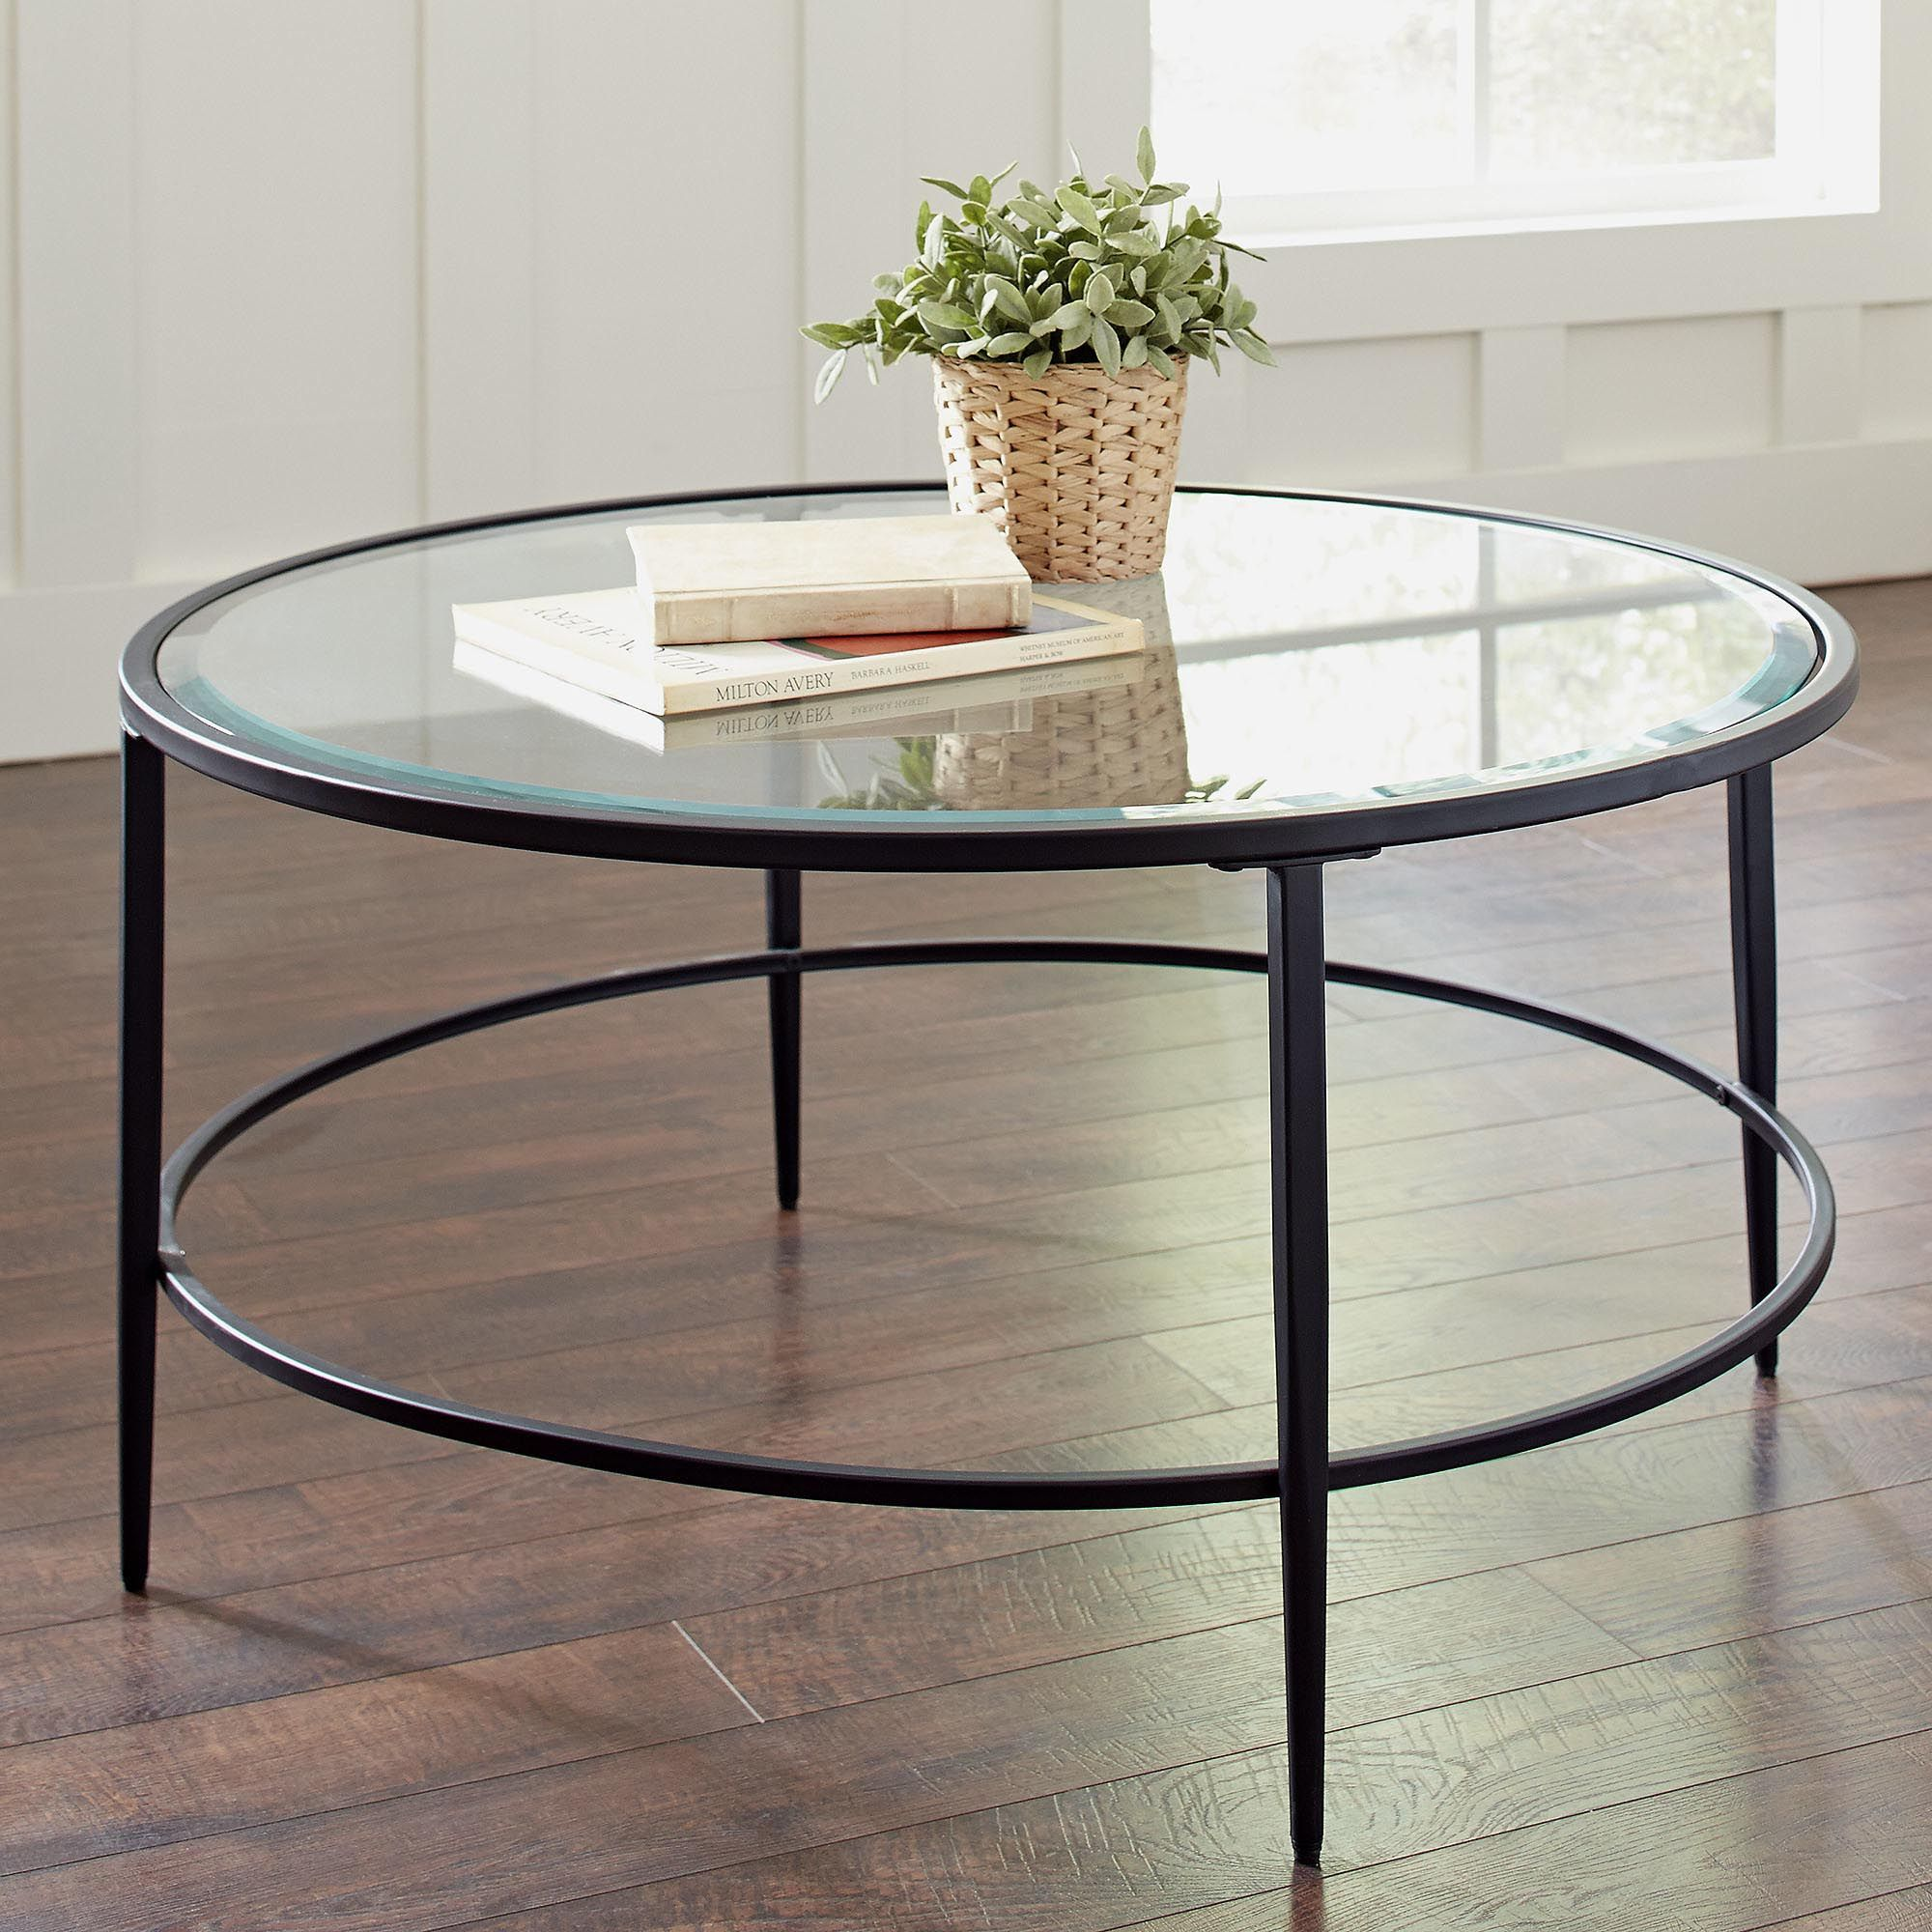 Crate And Barrel Glass Top Coffee Table Collection Glass Coffee Table Designs Glass Circle Co [ 2000 x 2000 Pixel ]